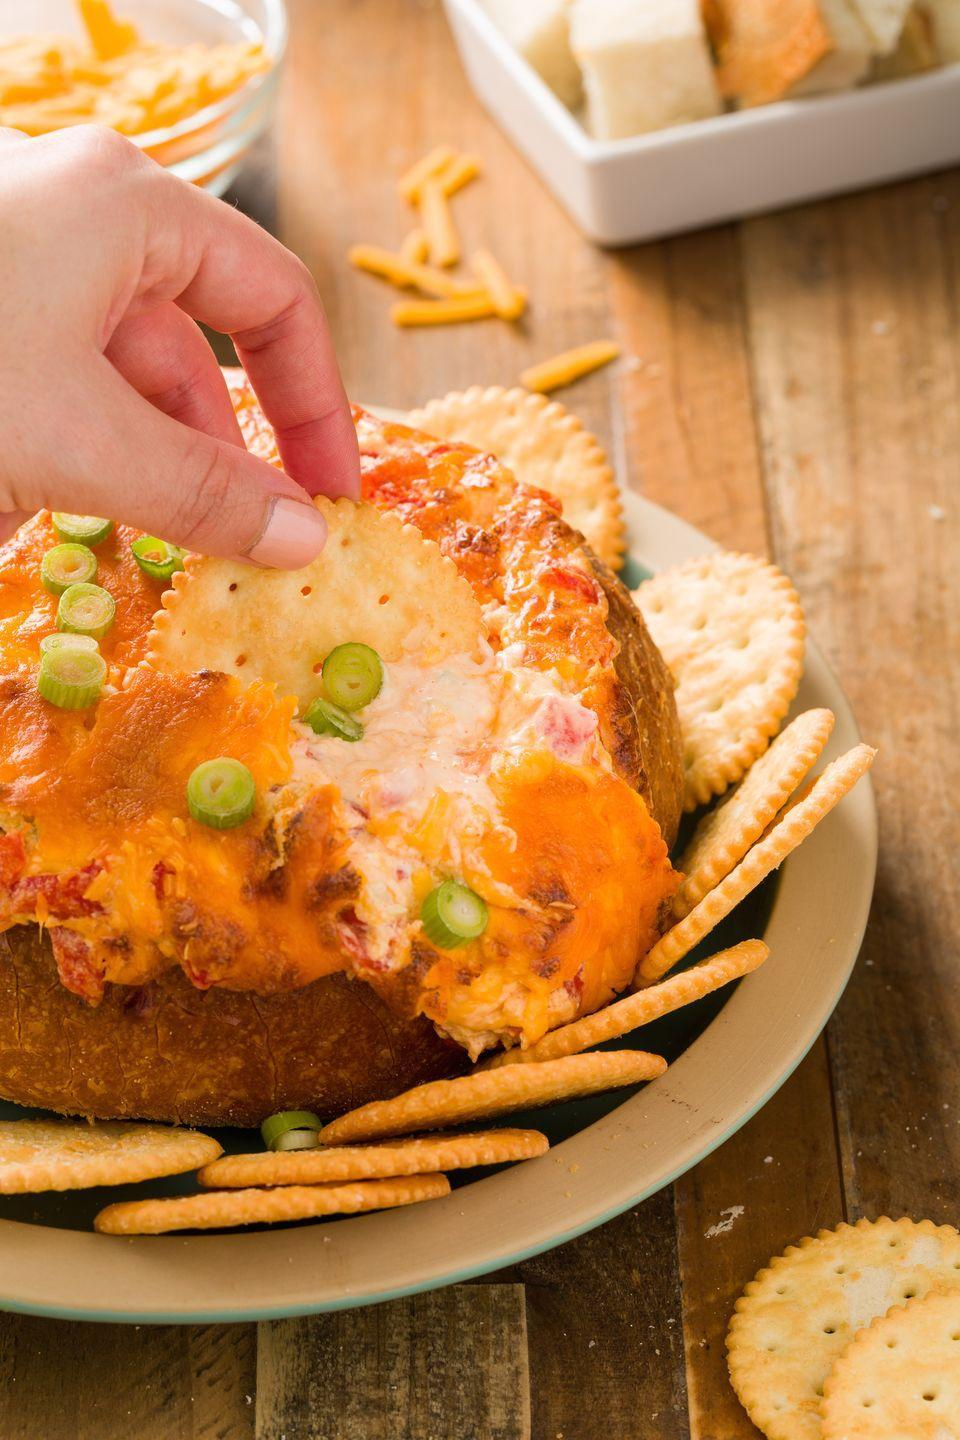 """<p>Served in a bread bowl? Uhhh yes.</p><p>Get the recipe from <a href=""""https://www.delish.com/cooking/recipe-ideas/recipes/a44541/baked-pimiento-cheese-dip-in-a-bread-bowl-recipe/"""" rel=""""nofollow noopener"""" target=""""_blank"""" data-ylk=""""slk:Delish"""" class=""""link rapid-noclick-resp"""">Delish</a>. </p>"""